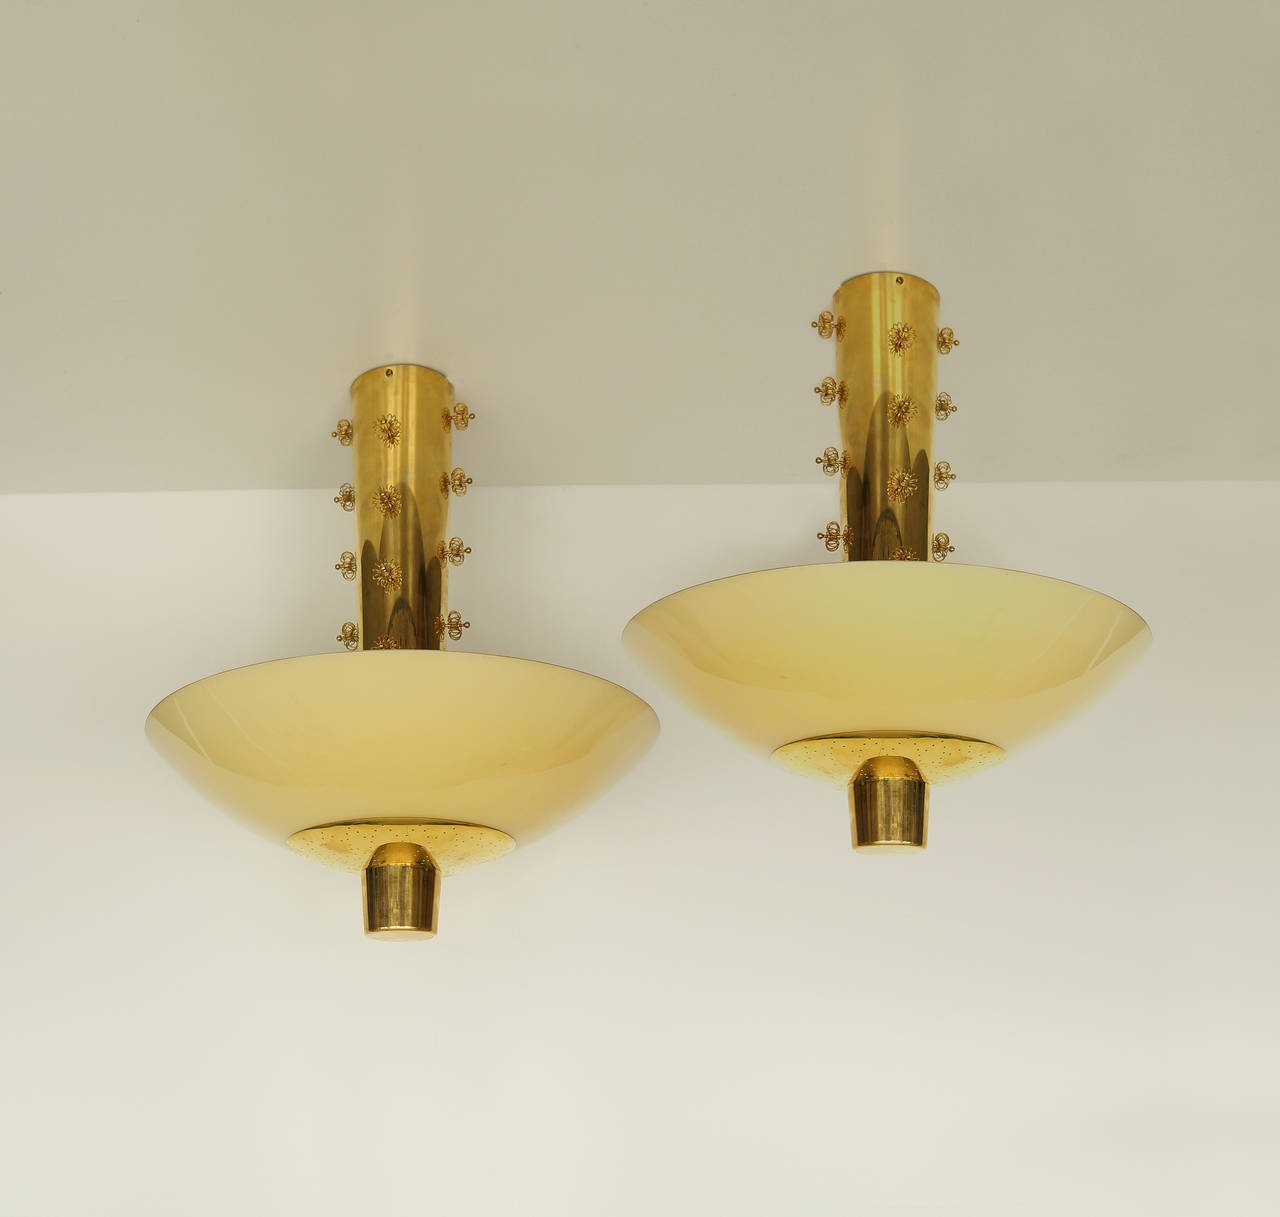 Paavo Tynell Pair of Custom Ceiling Lights for Taito Oy, 1940s